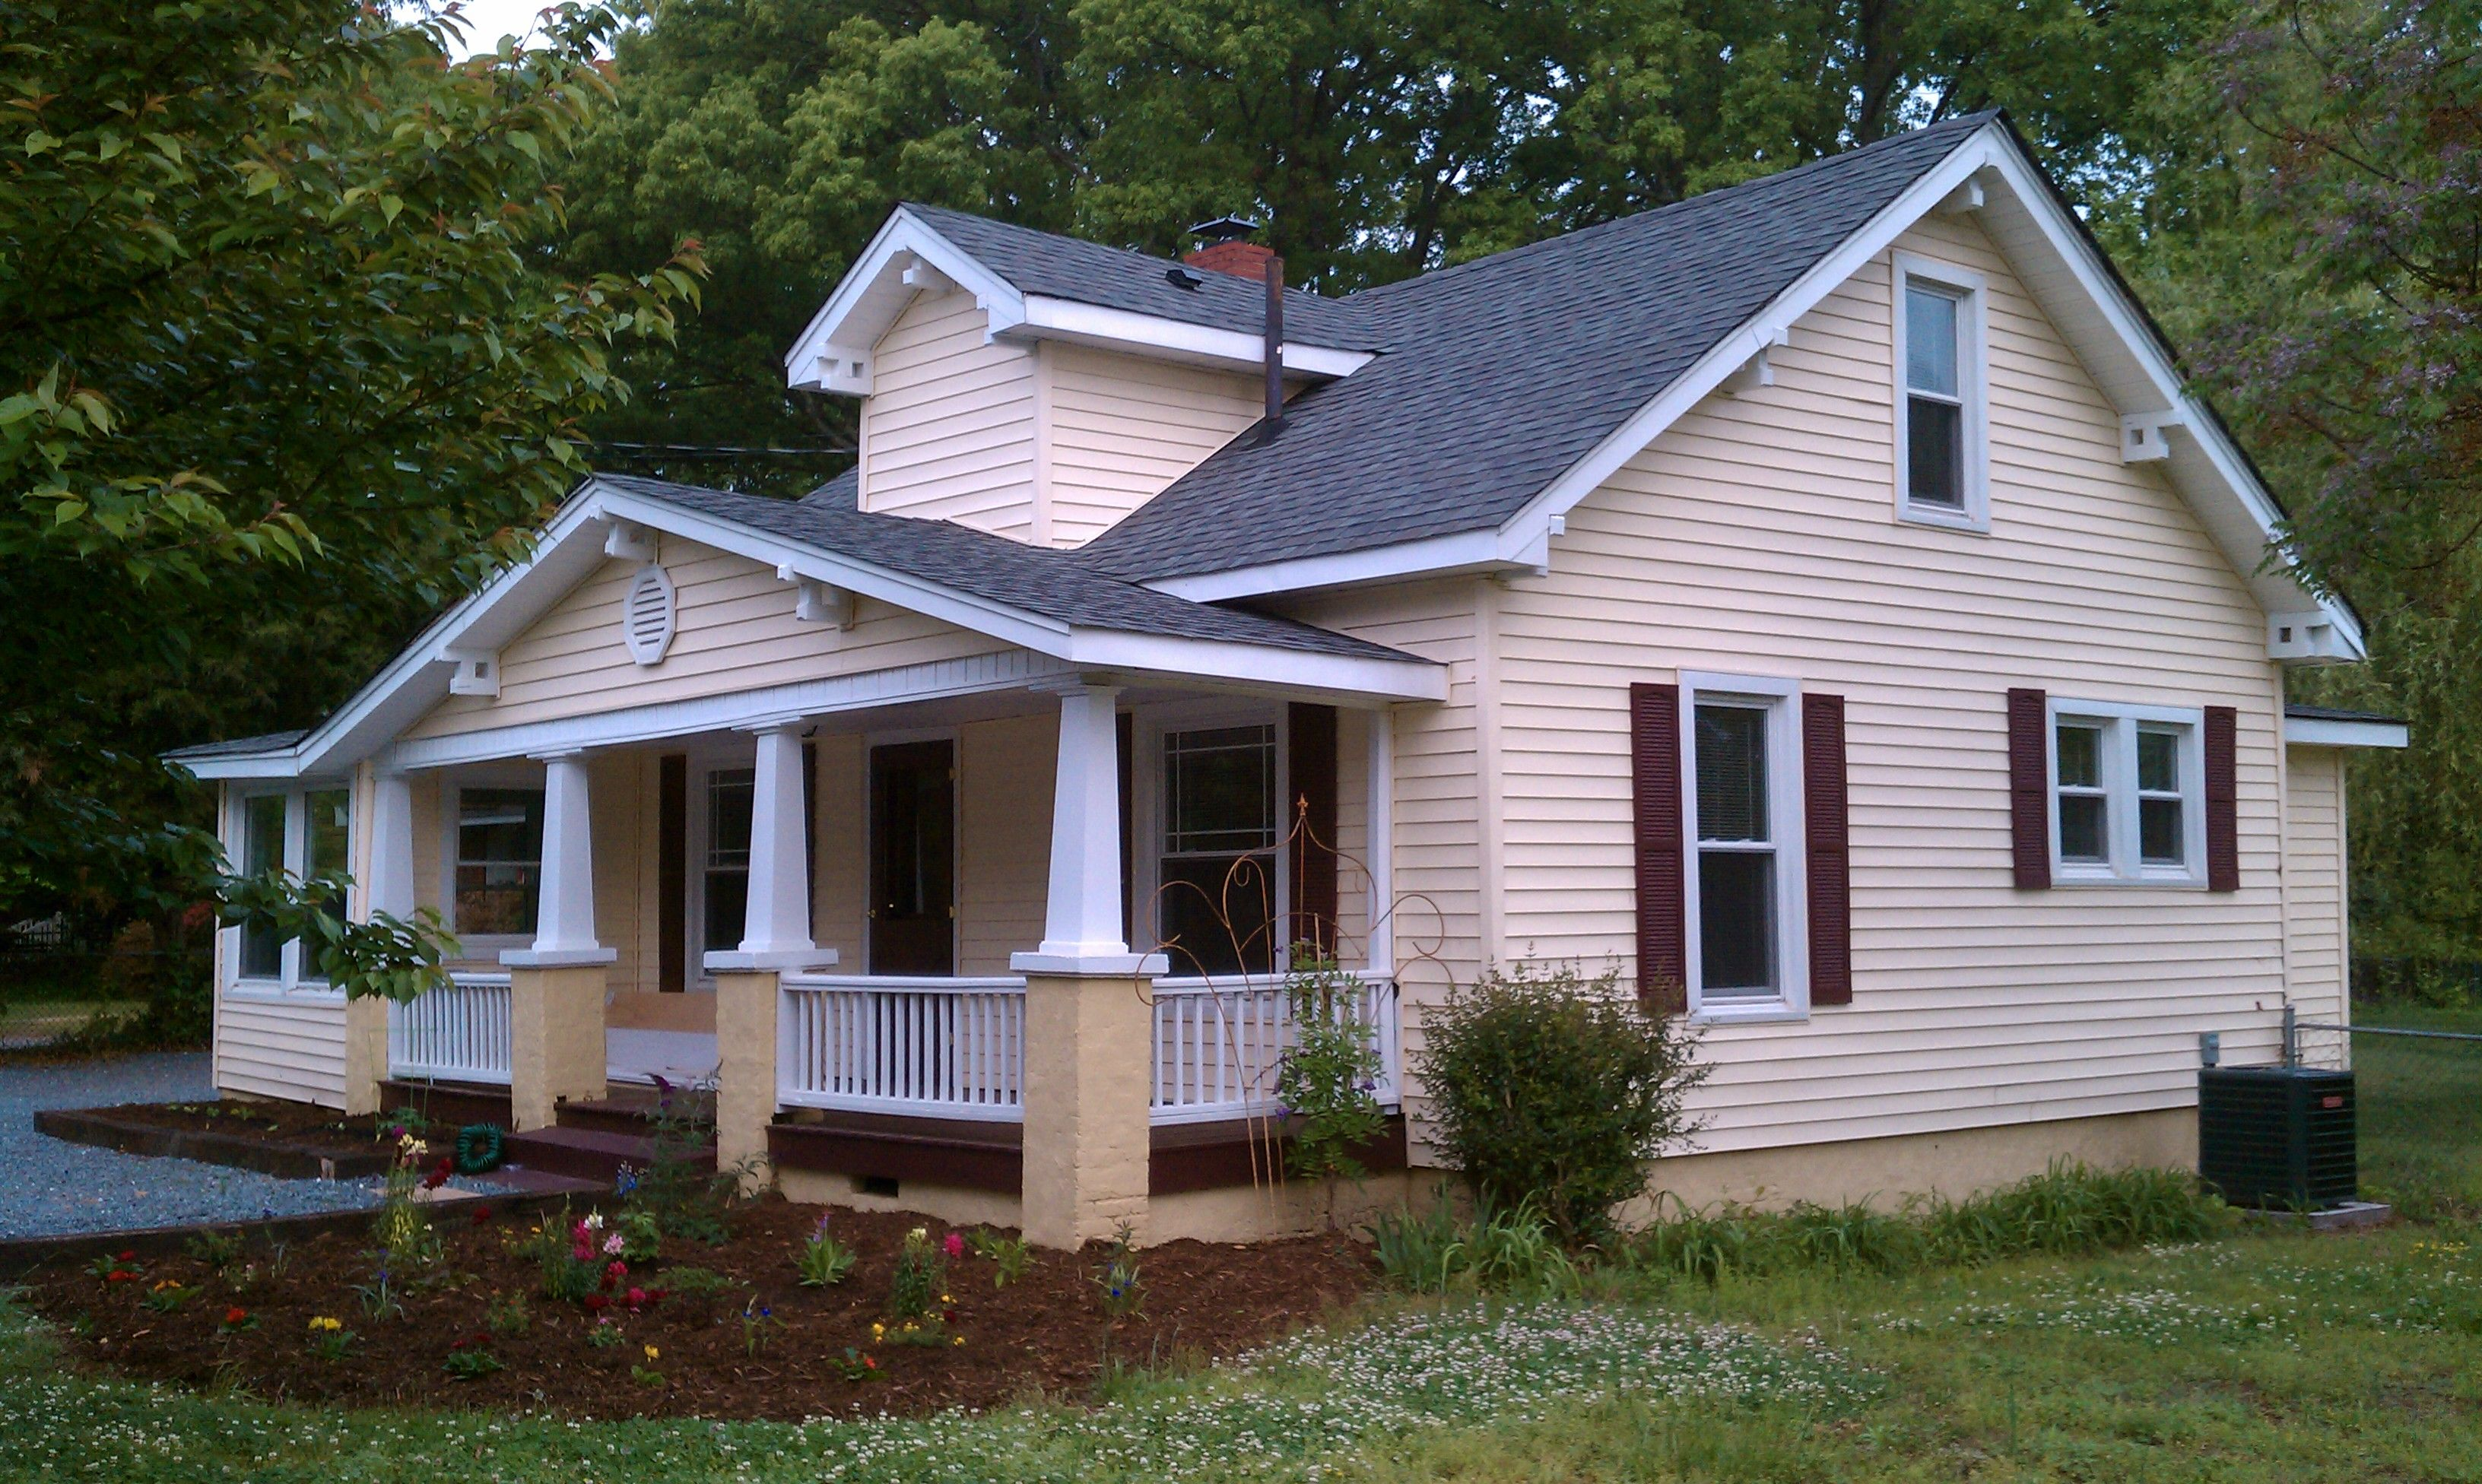 WinstonSalem home for rent on Polo Rd. 1500 per month